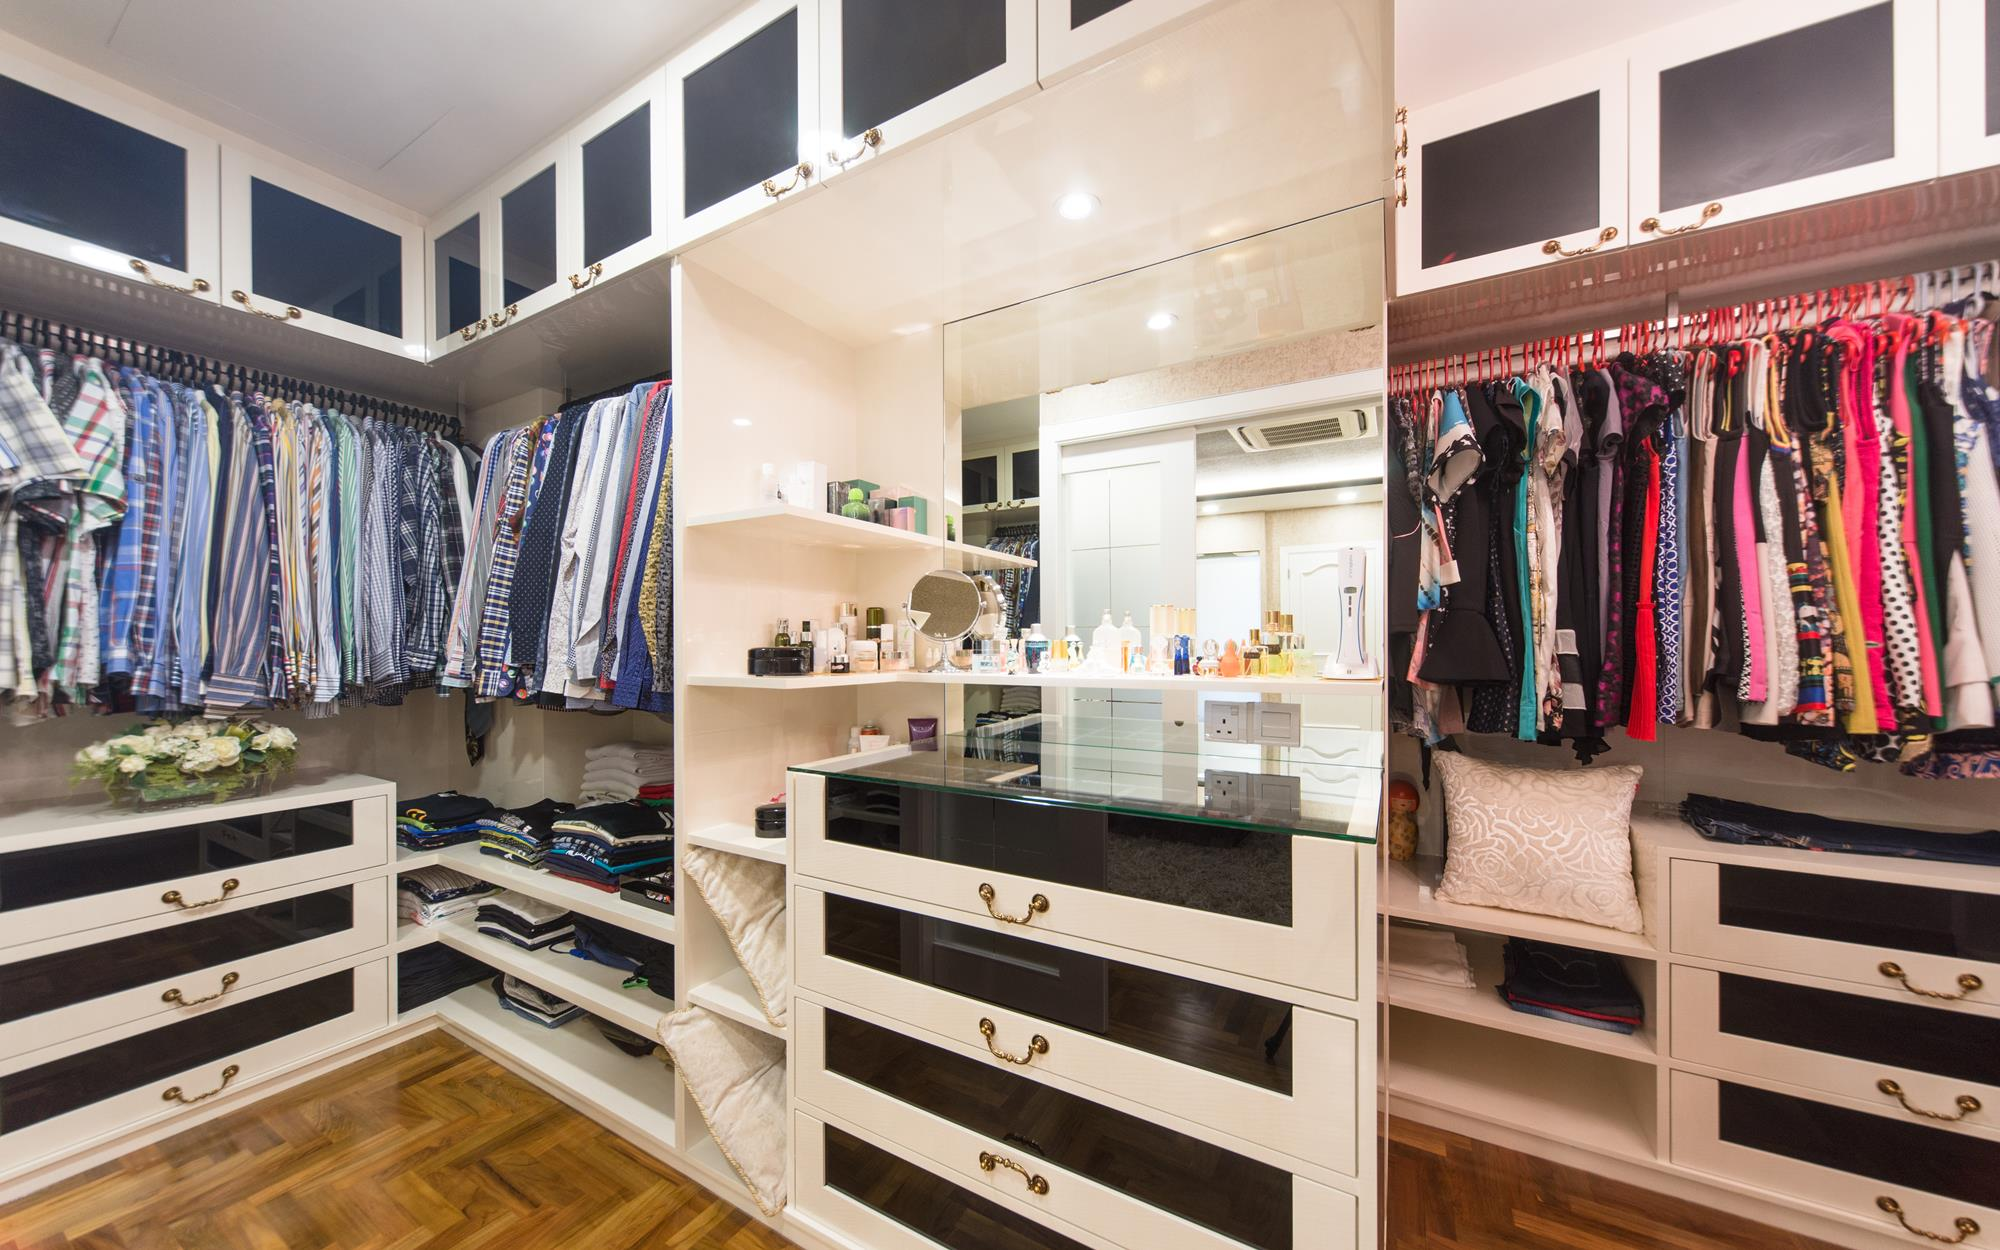 open wardrobe design combined with more classic styled built ins provides more than adequate storage adequate storage space